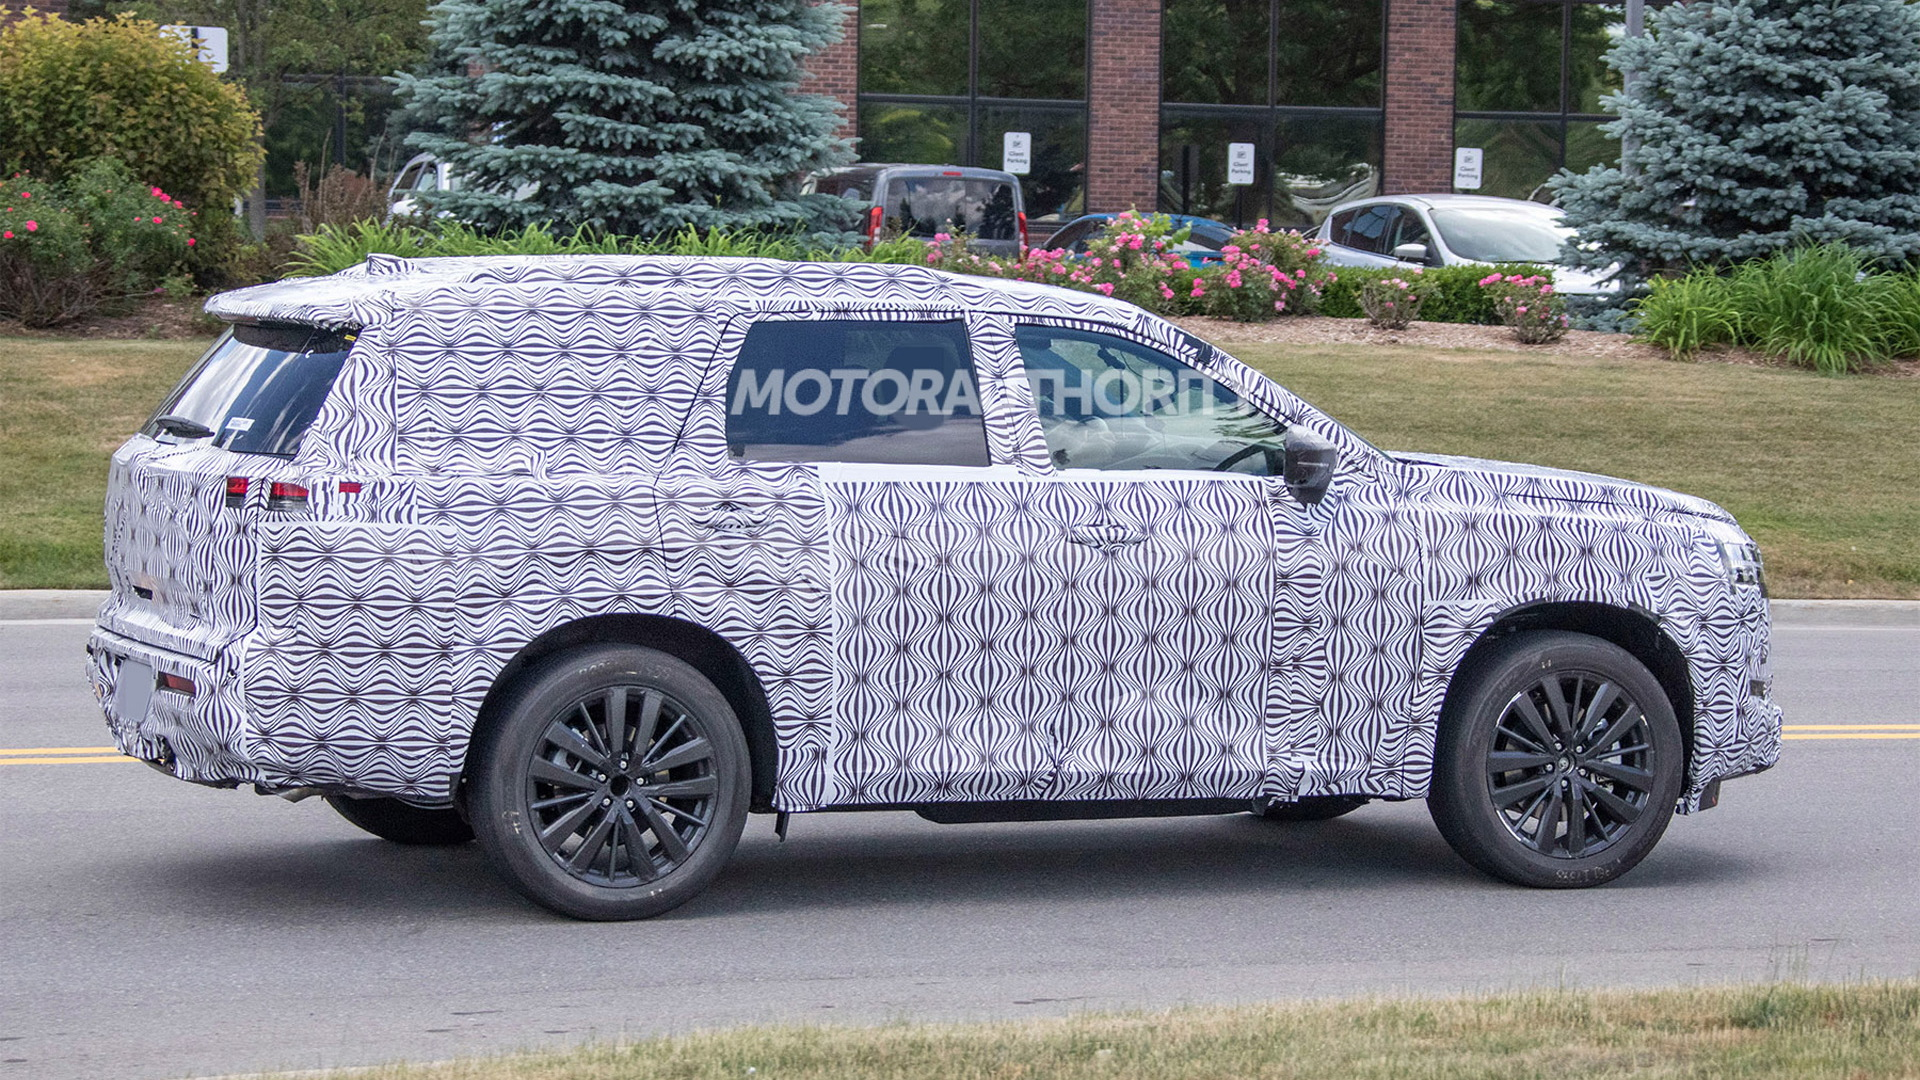 2022 Nissan Pathfinder spy shots - Photo credit: S. Baldauf/SB-Medien